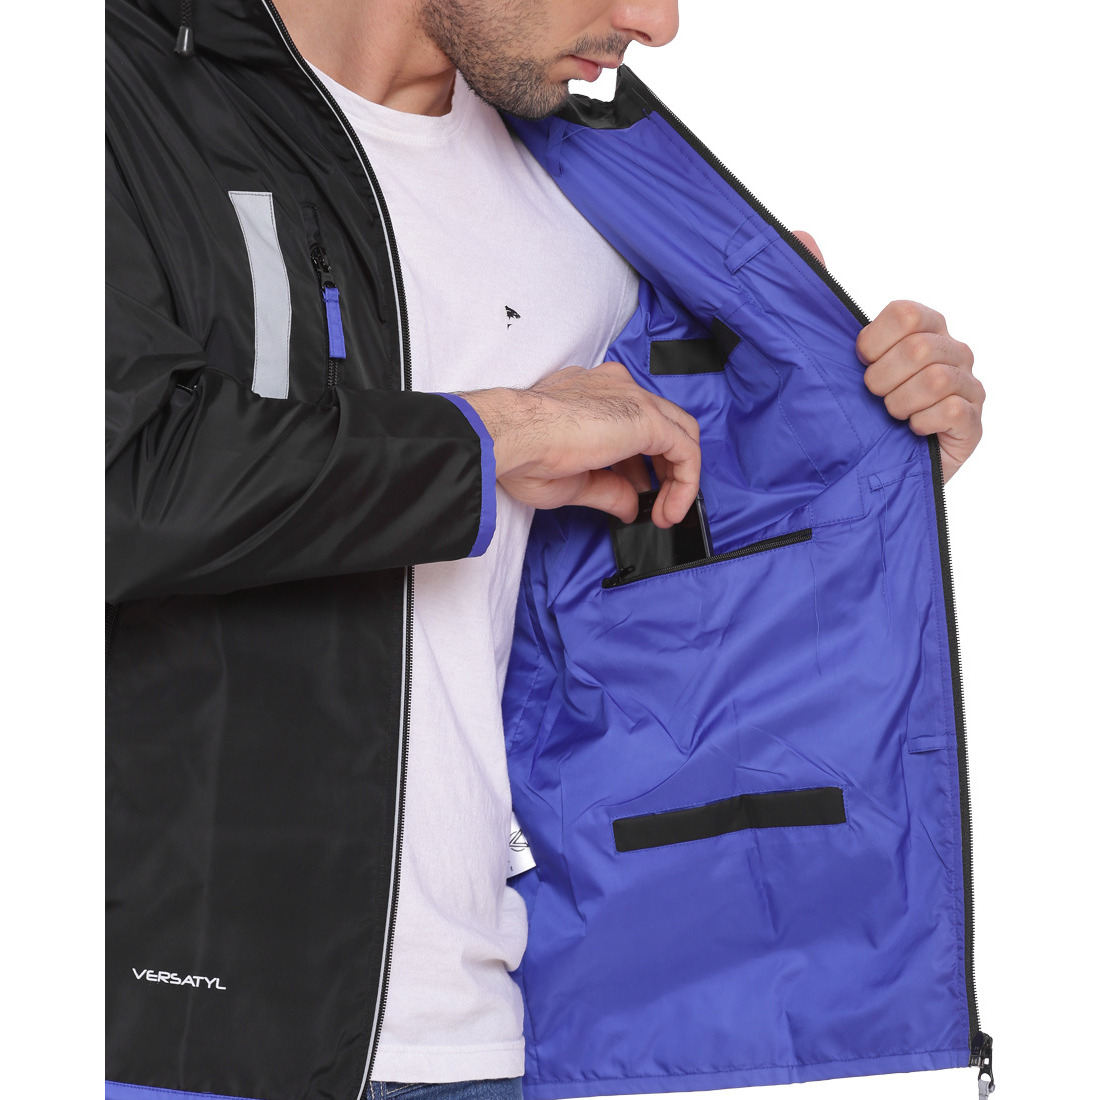 VERSATYL - World's 1st Multi-Utility Stylish Travel Jacket with 18 pockets and 29 features for Men and Women - S (Size:XL)